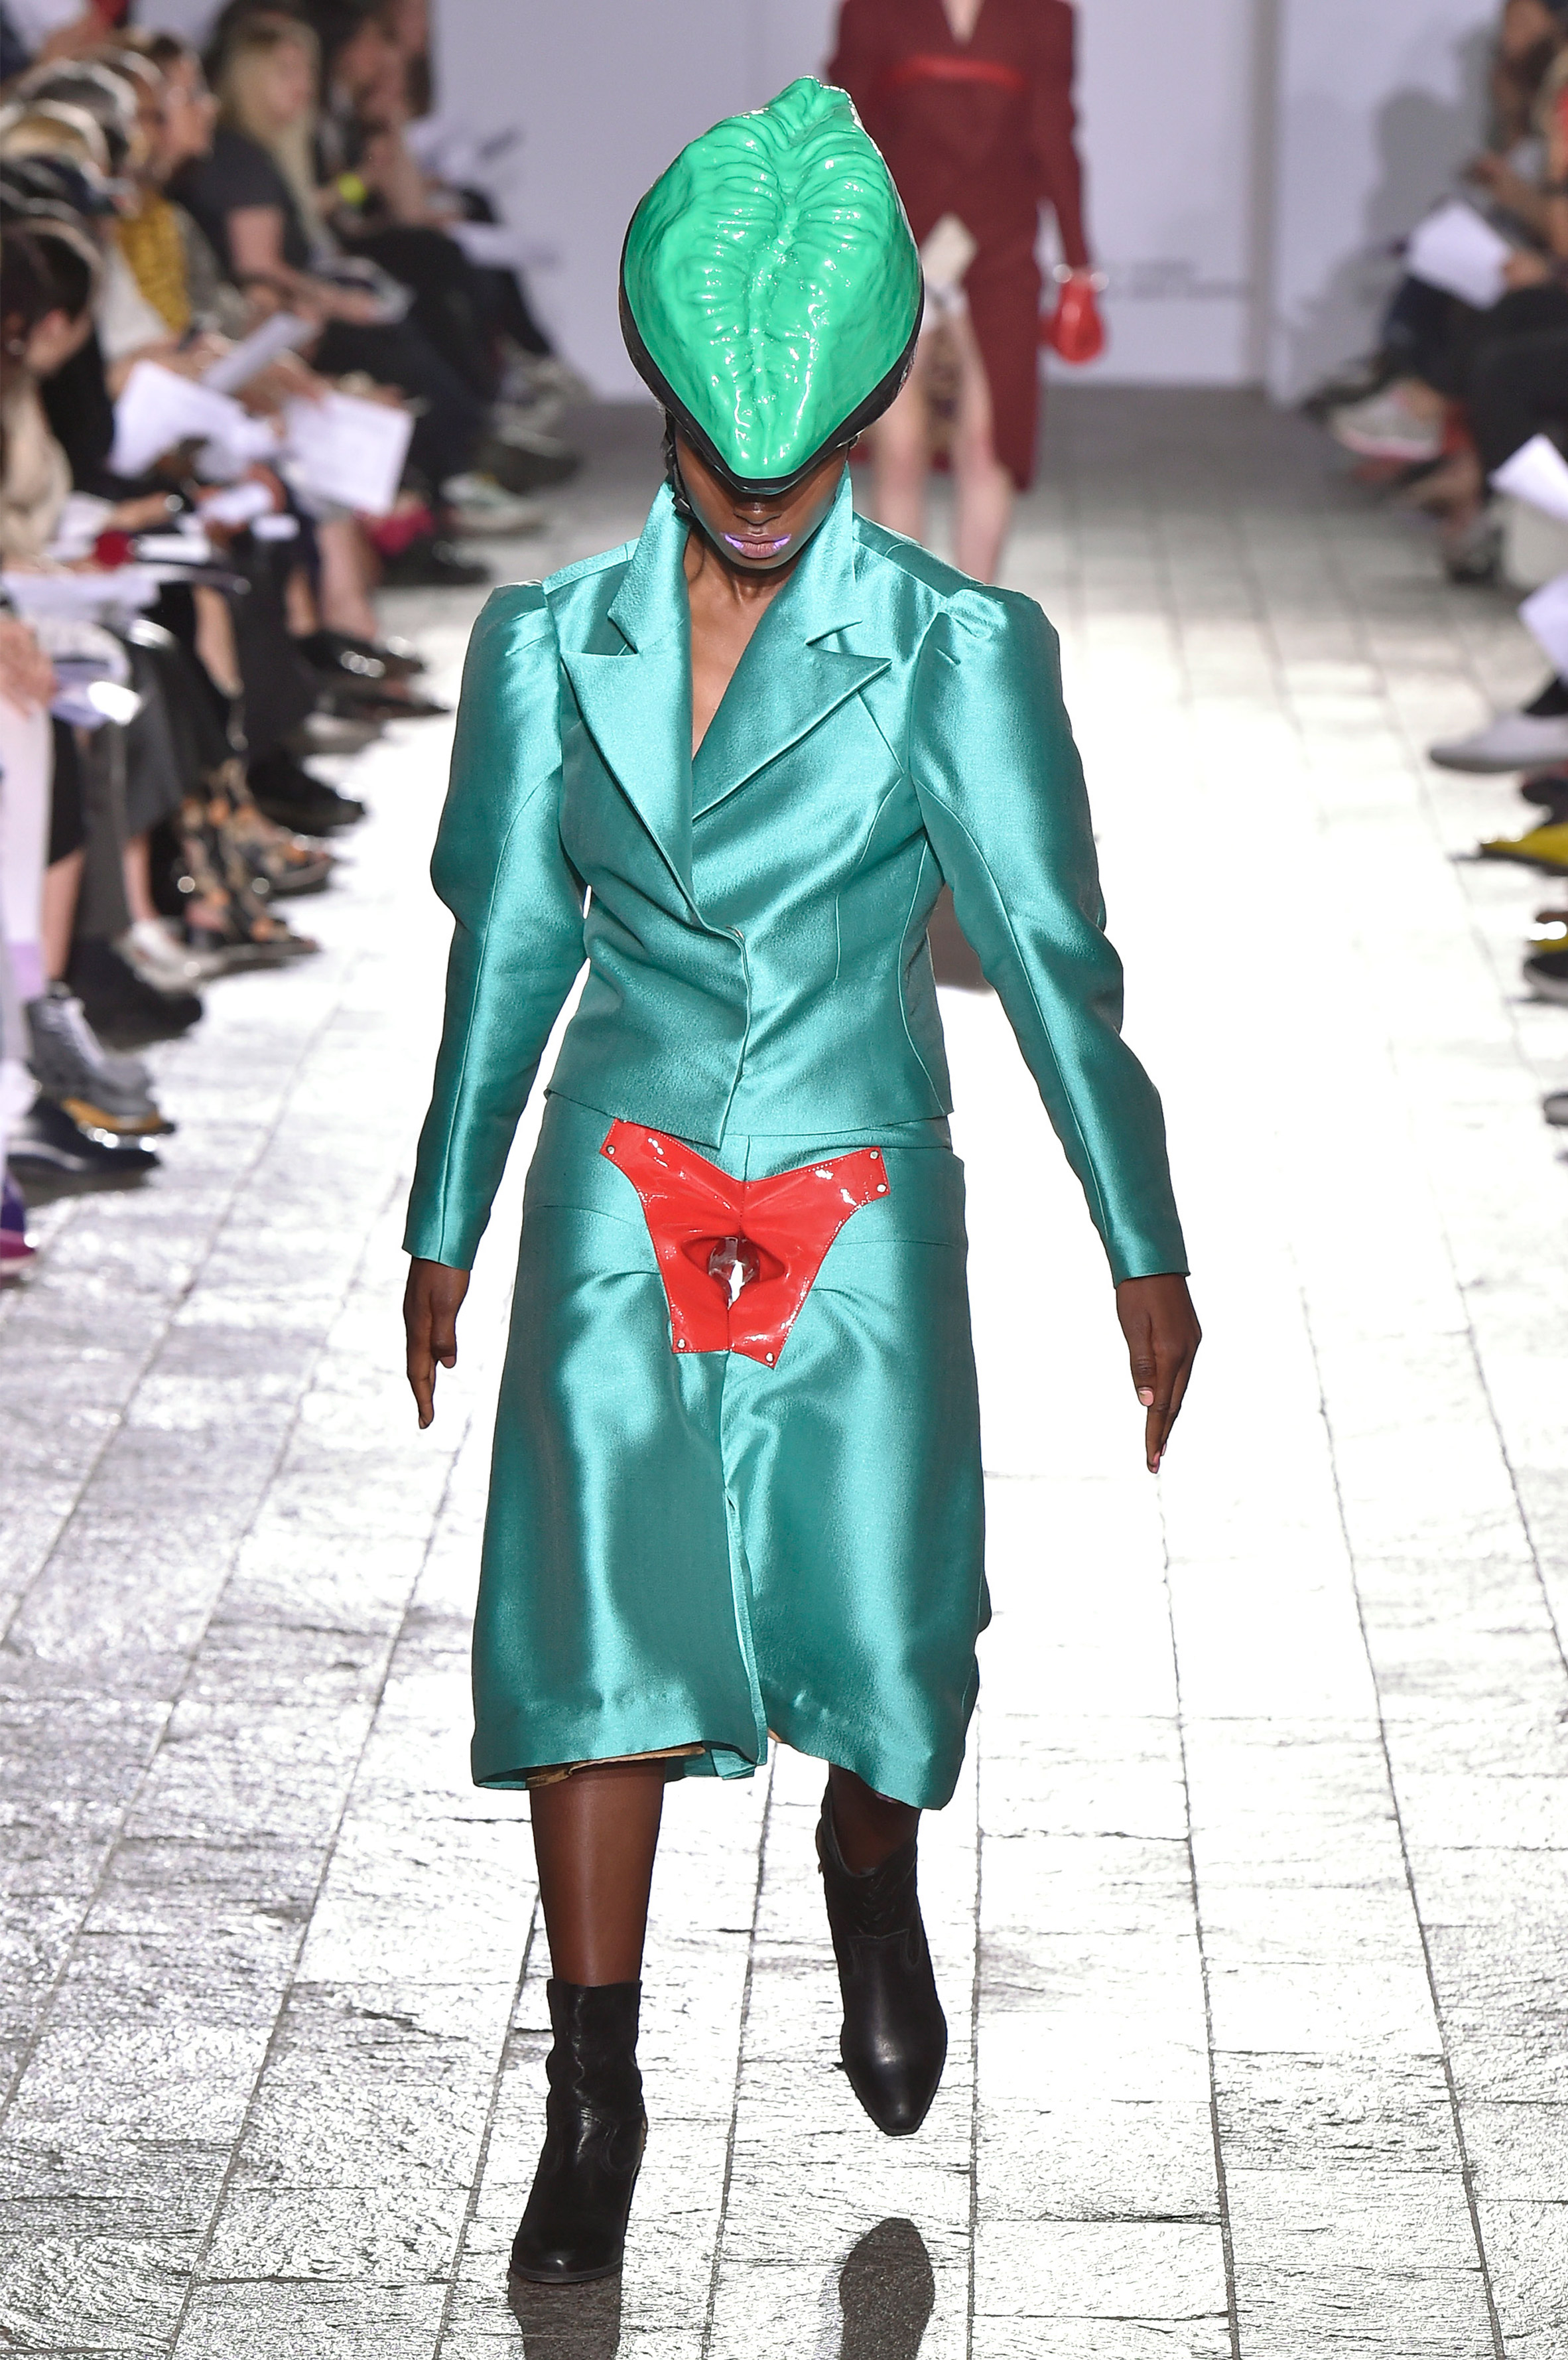 15 designers to watch from this year's Central Saint Martins BA Fashion show